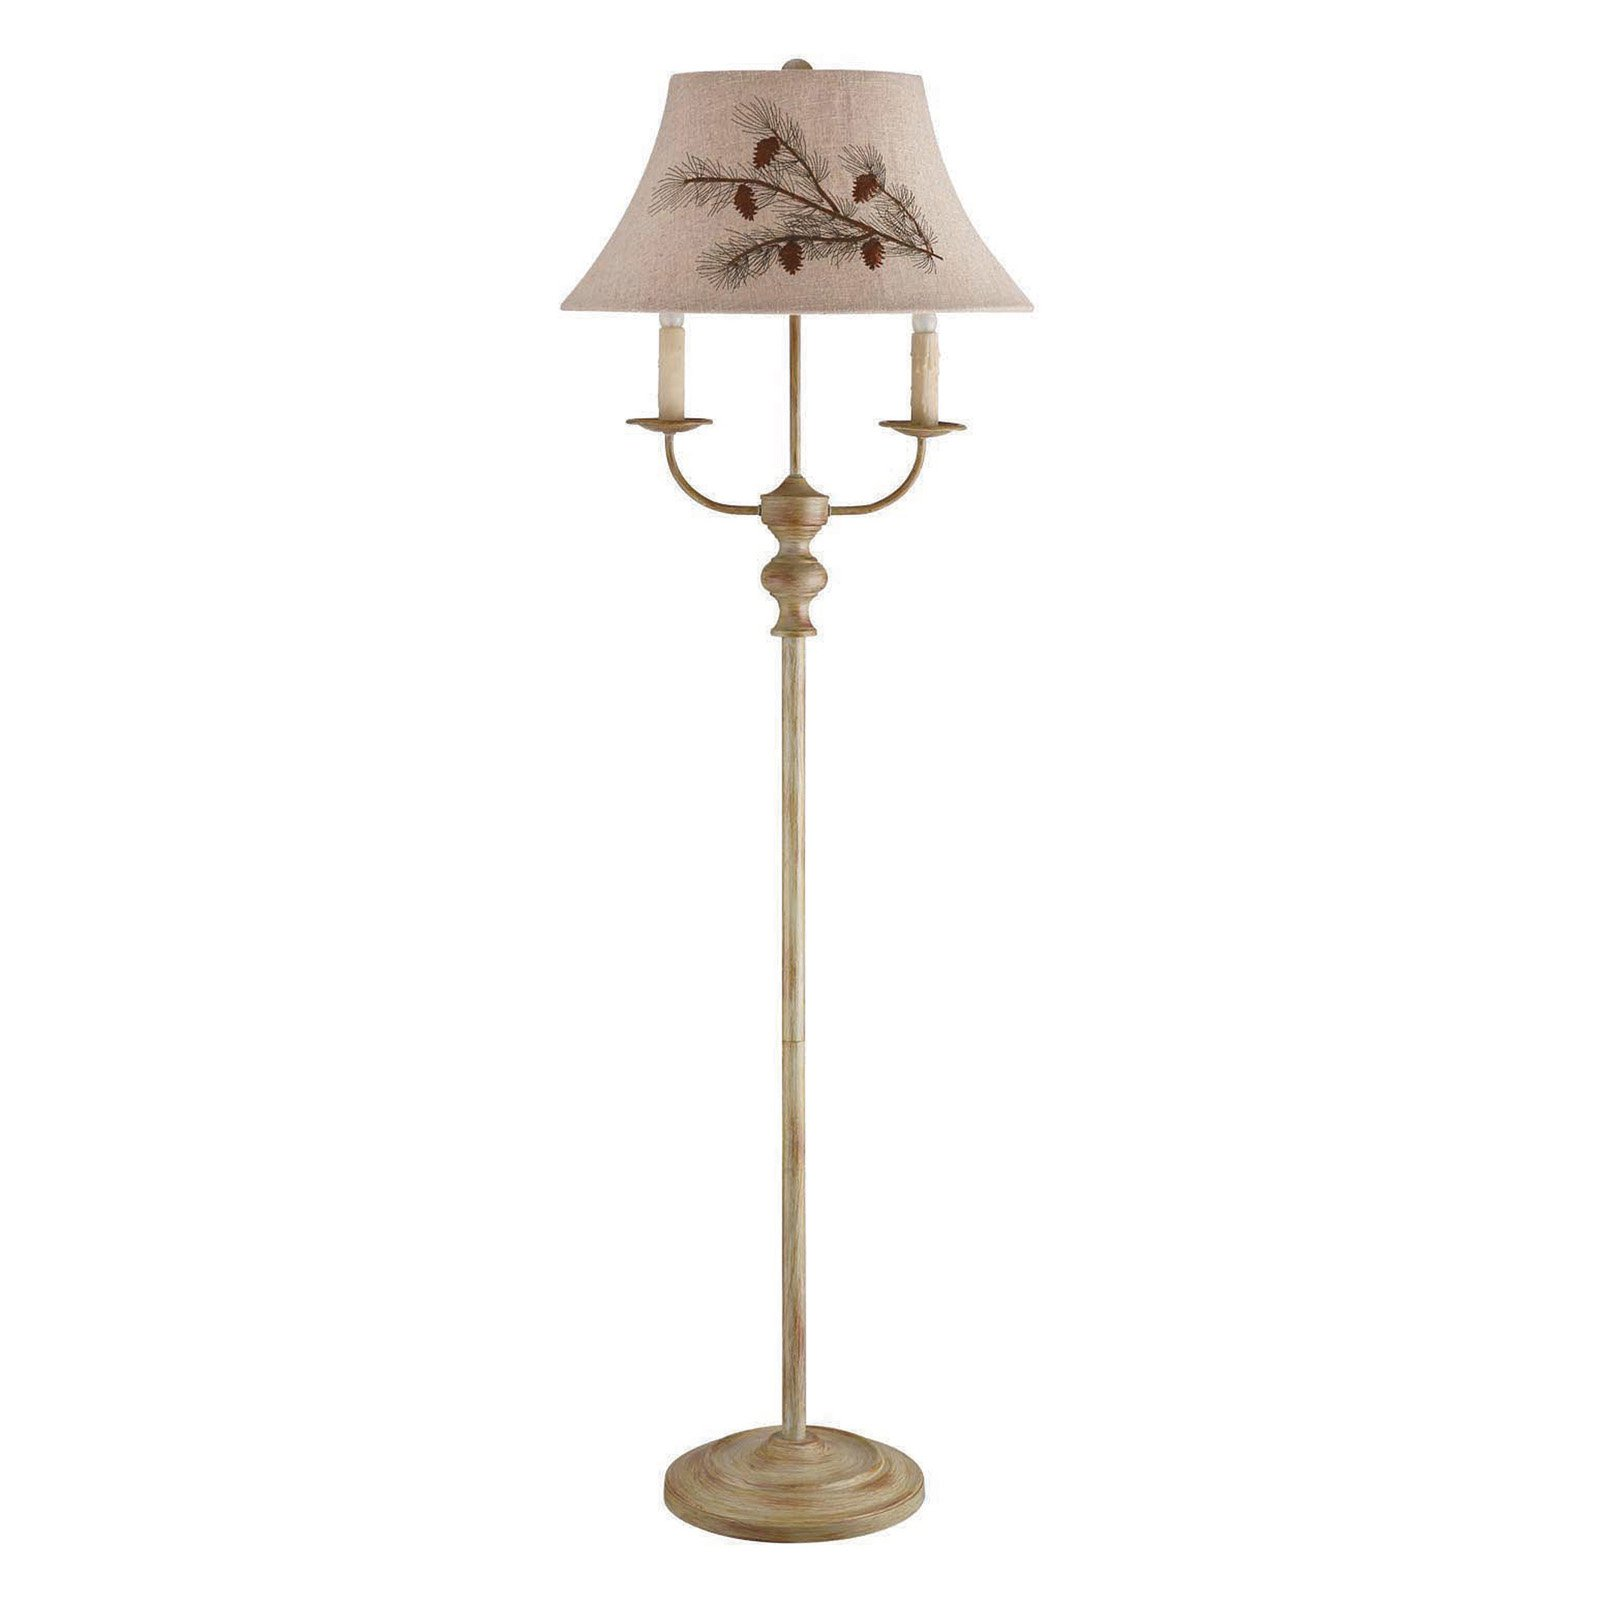 Image of A Homestead Shoppe Bayfield Floor Lamp - Pinecone Shade